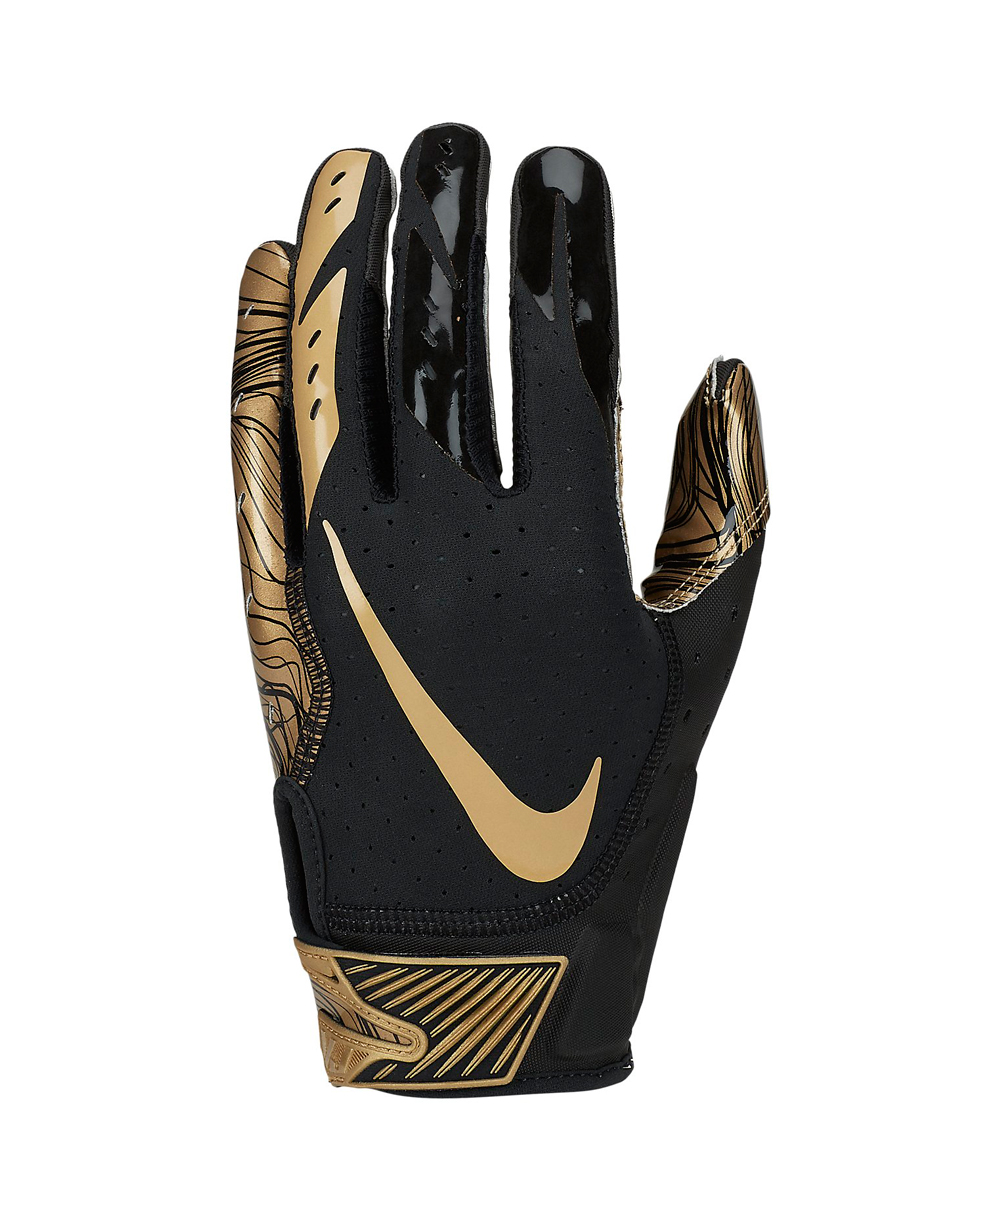 Vapor Jet 5 Guanti Football Americano Uomo Black/Gold